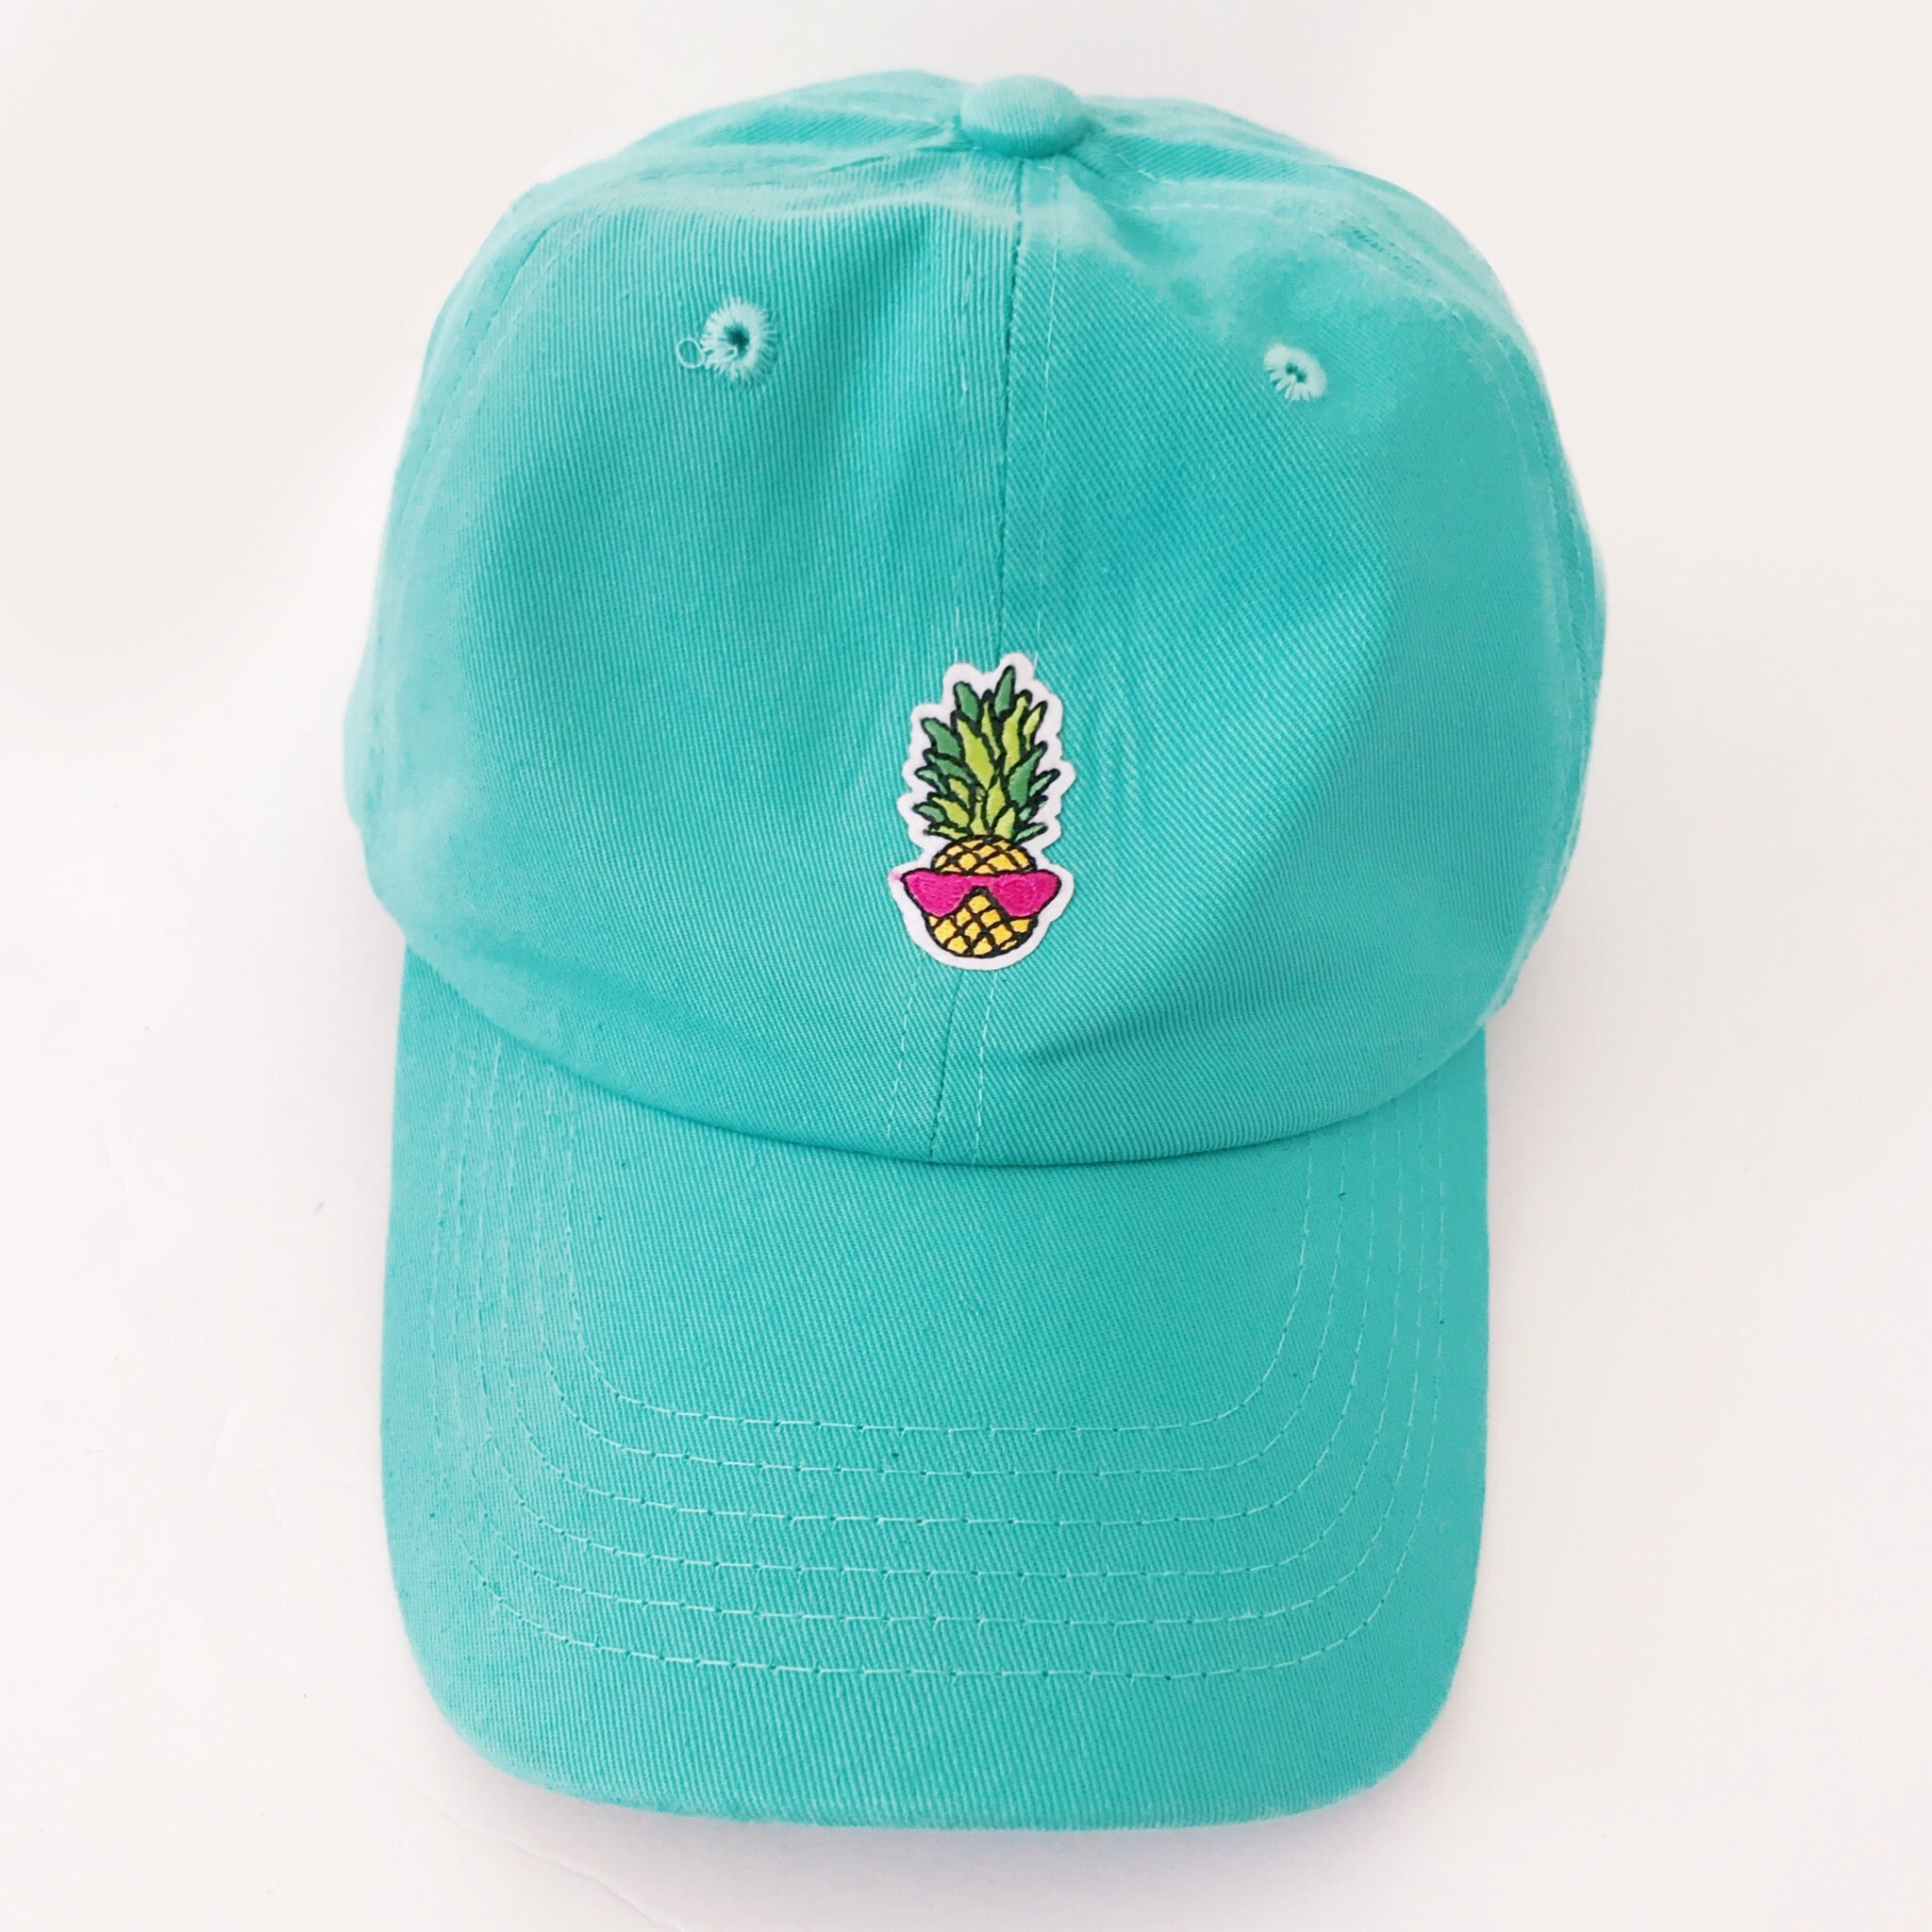 Pineapple Sunnies Embroidered Baseball Cap